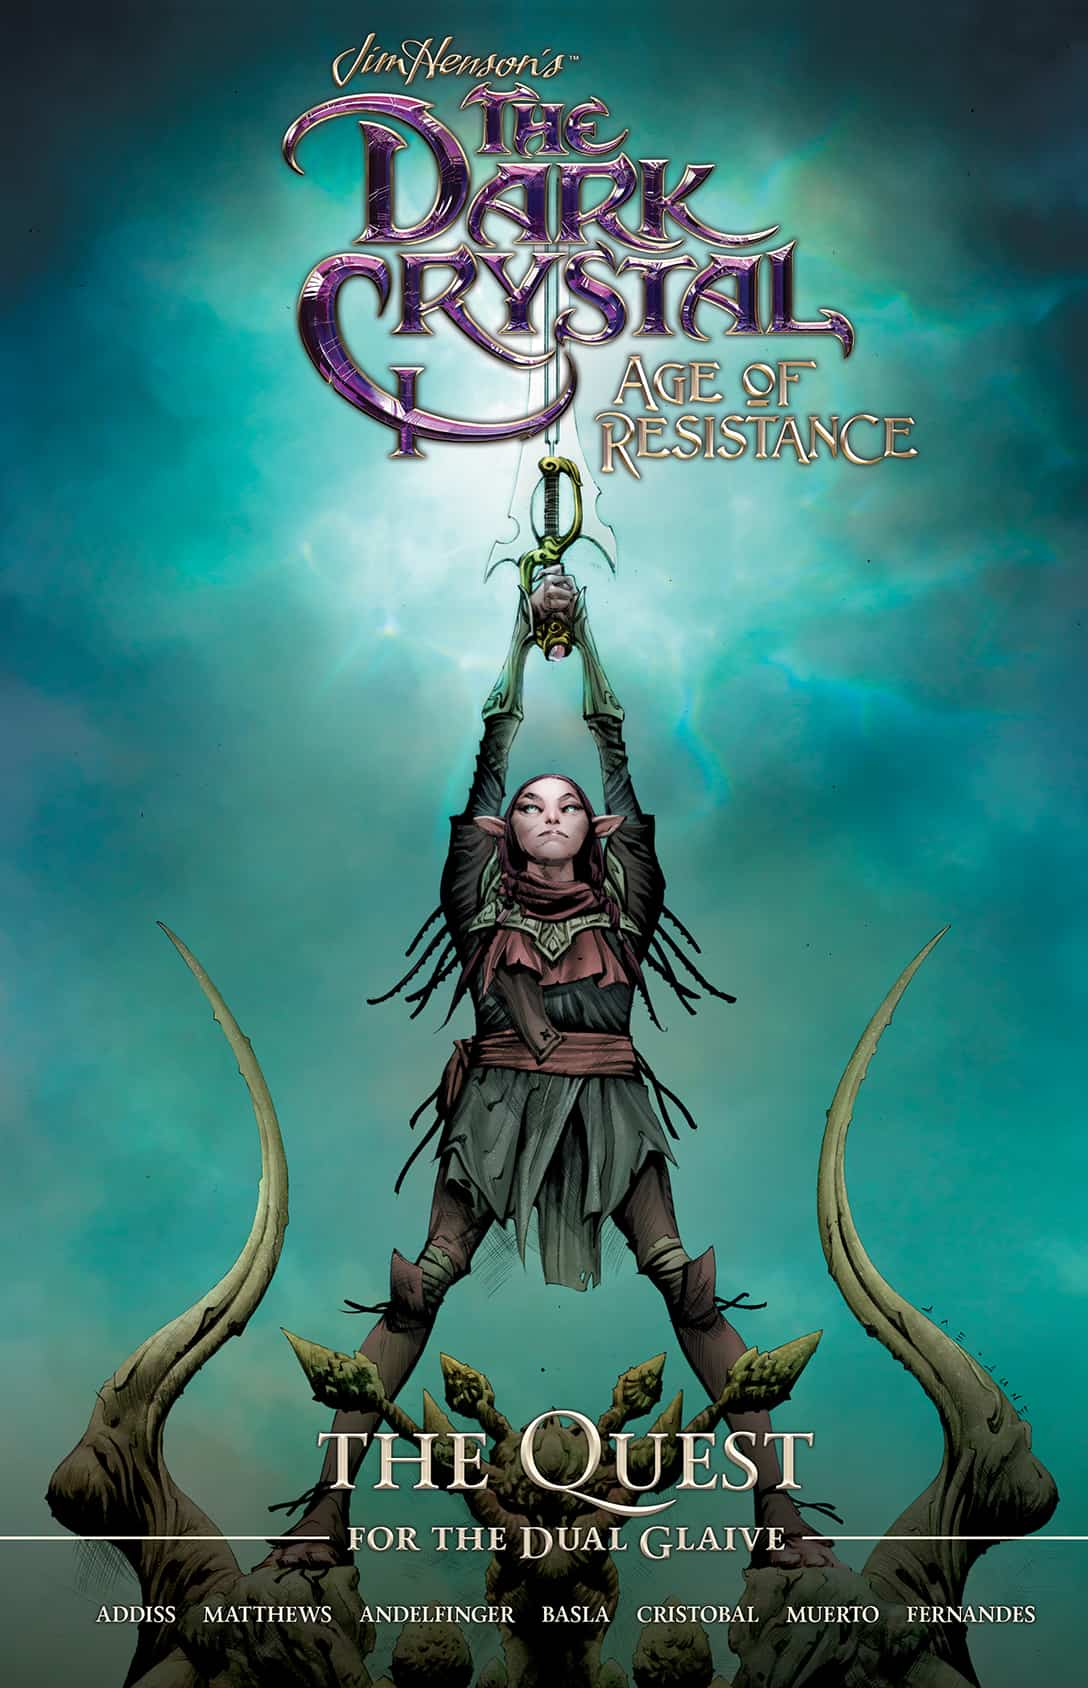 Jim Henson's The Dark Crystal: Age of Resistance: The Quest for the Dual Glaive HC